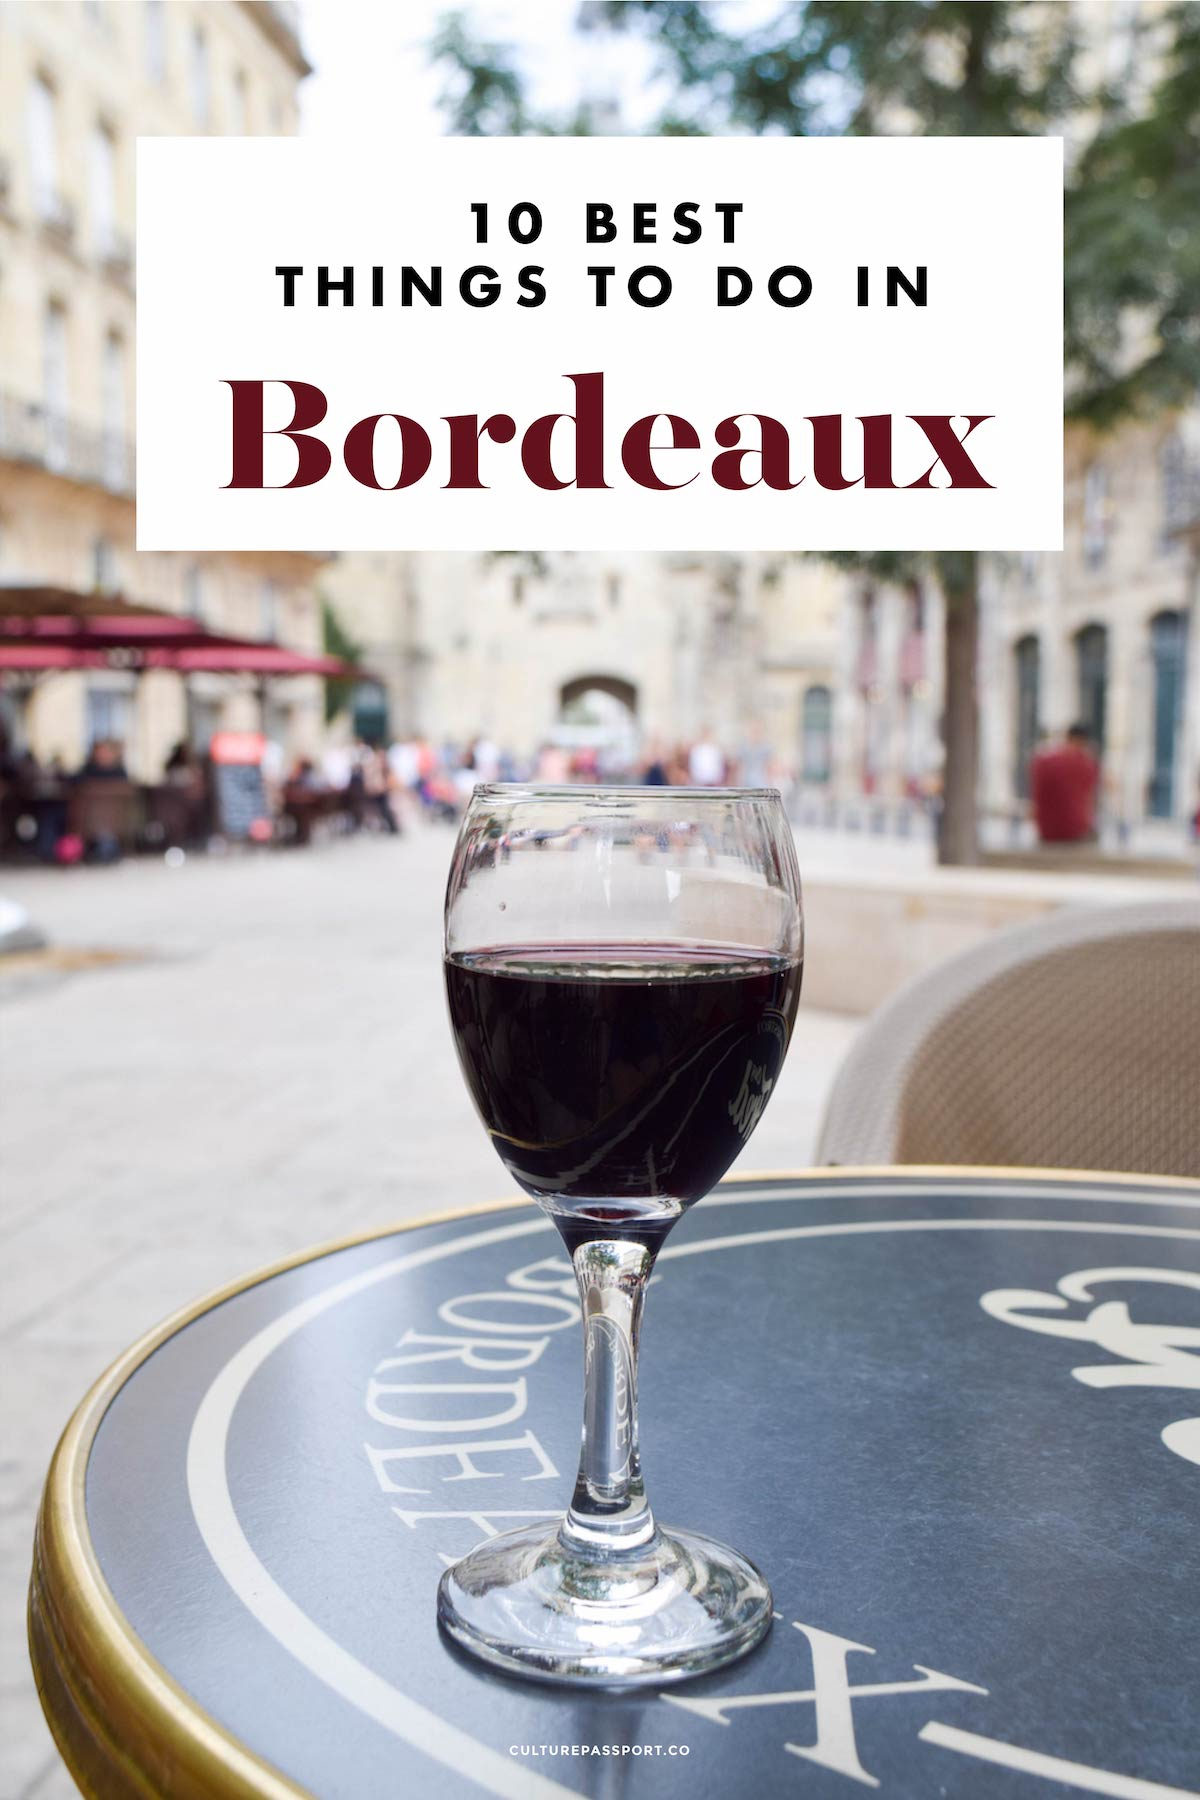 10 Best Things to Do in Bordeaux, France!